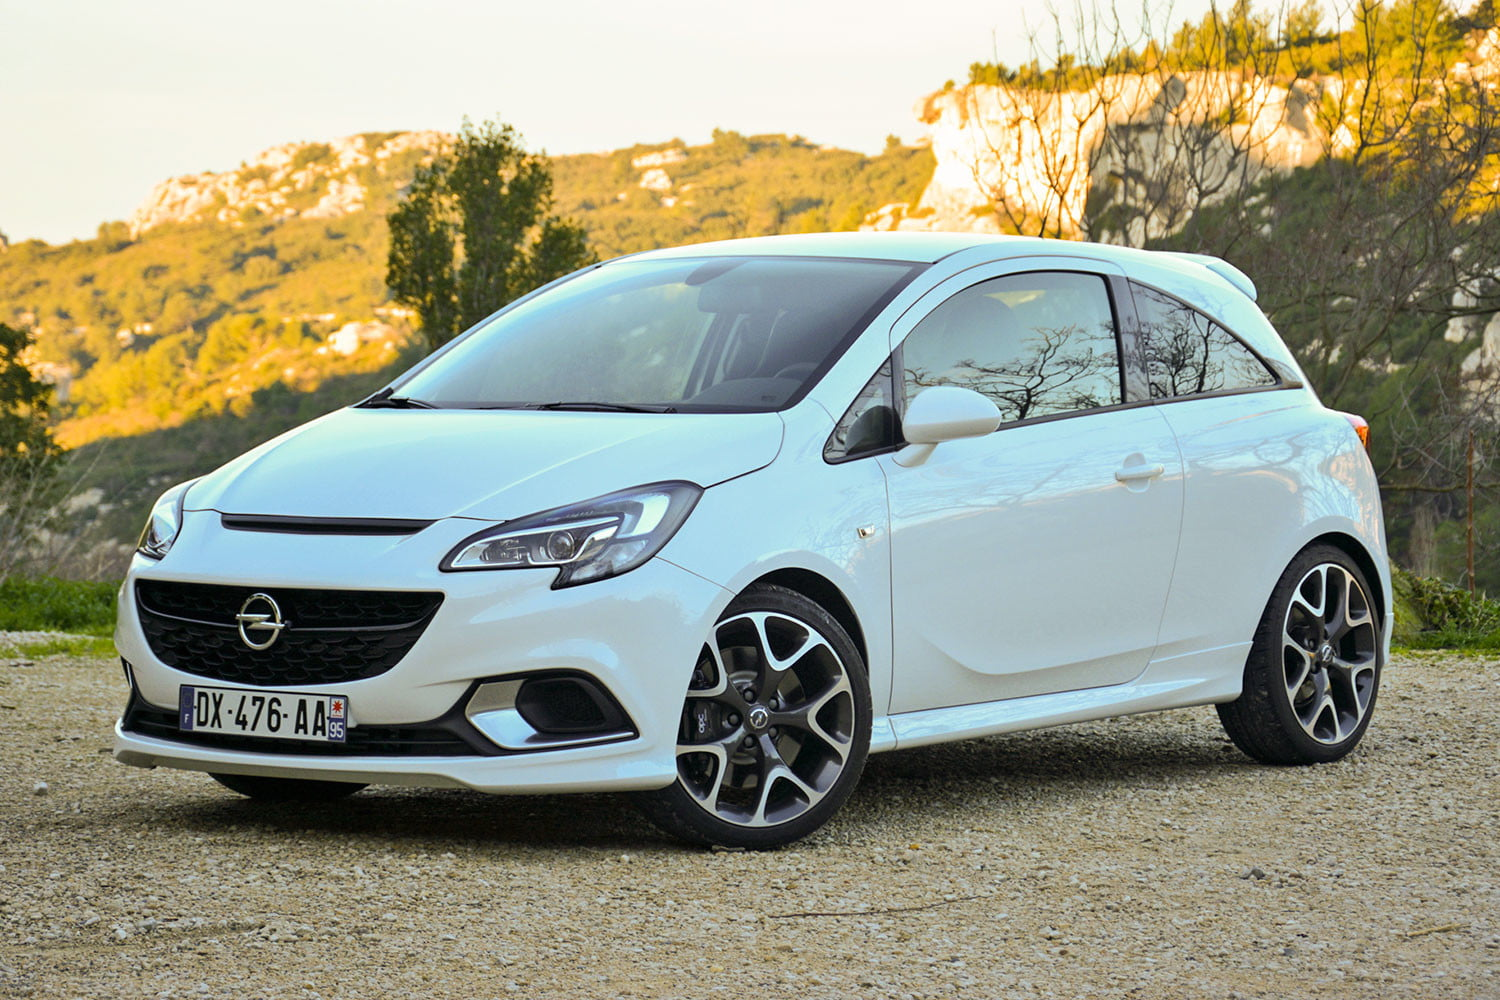 2016 Opel Corsa OPC | Review, Pics, Performance, Specs | Digital Trends